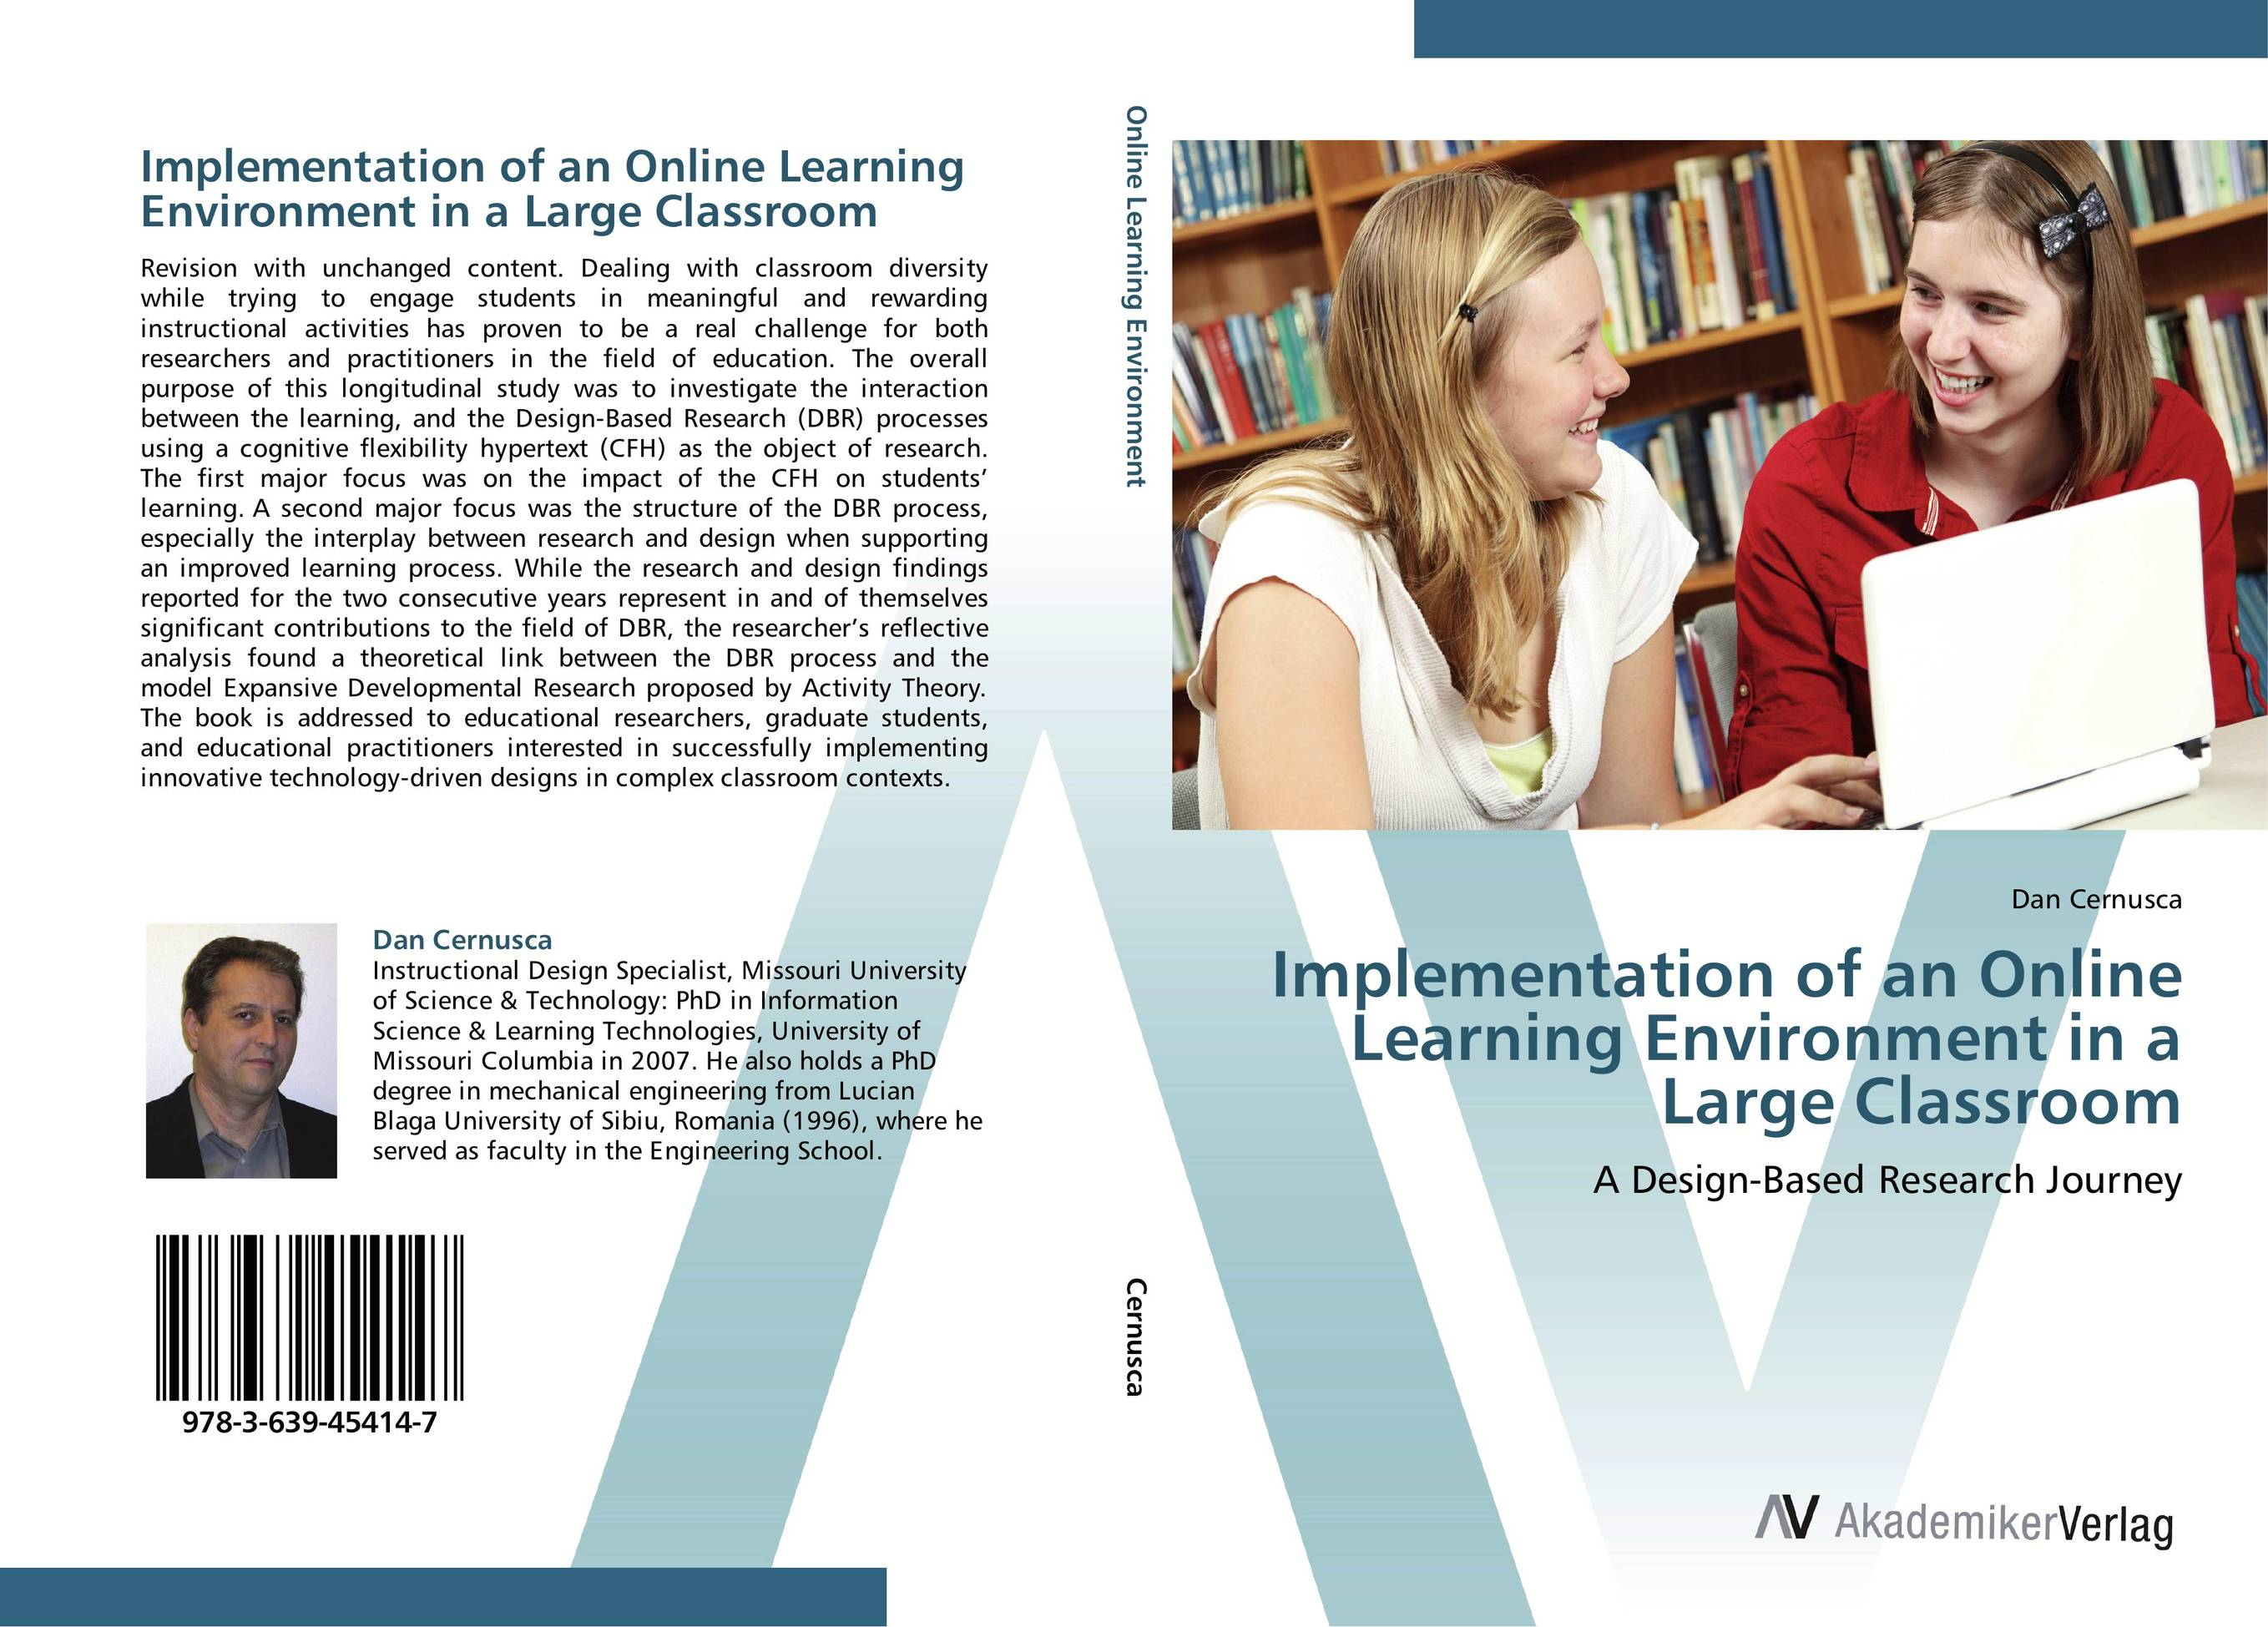 Implementation of an Online Learning Environment in a Large Classroom eve online где learning